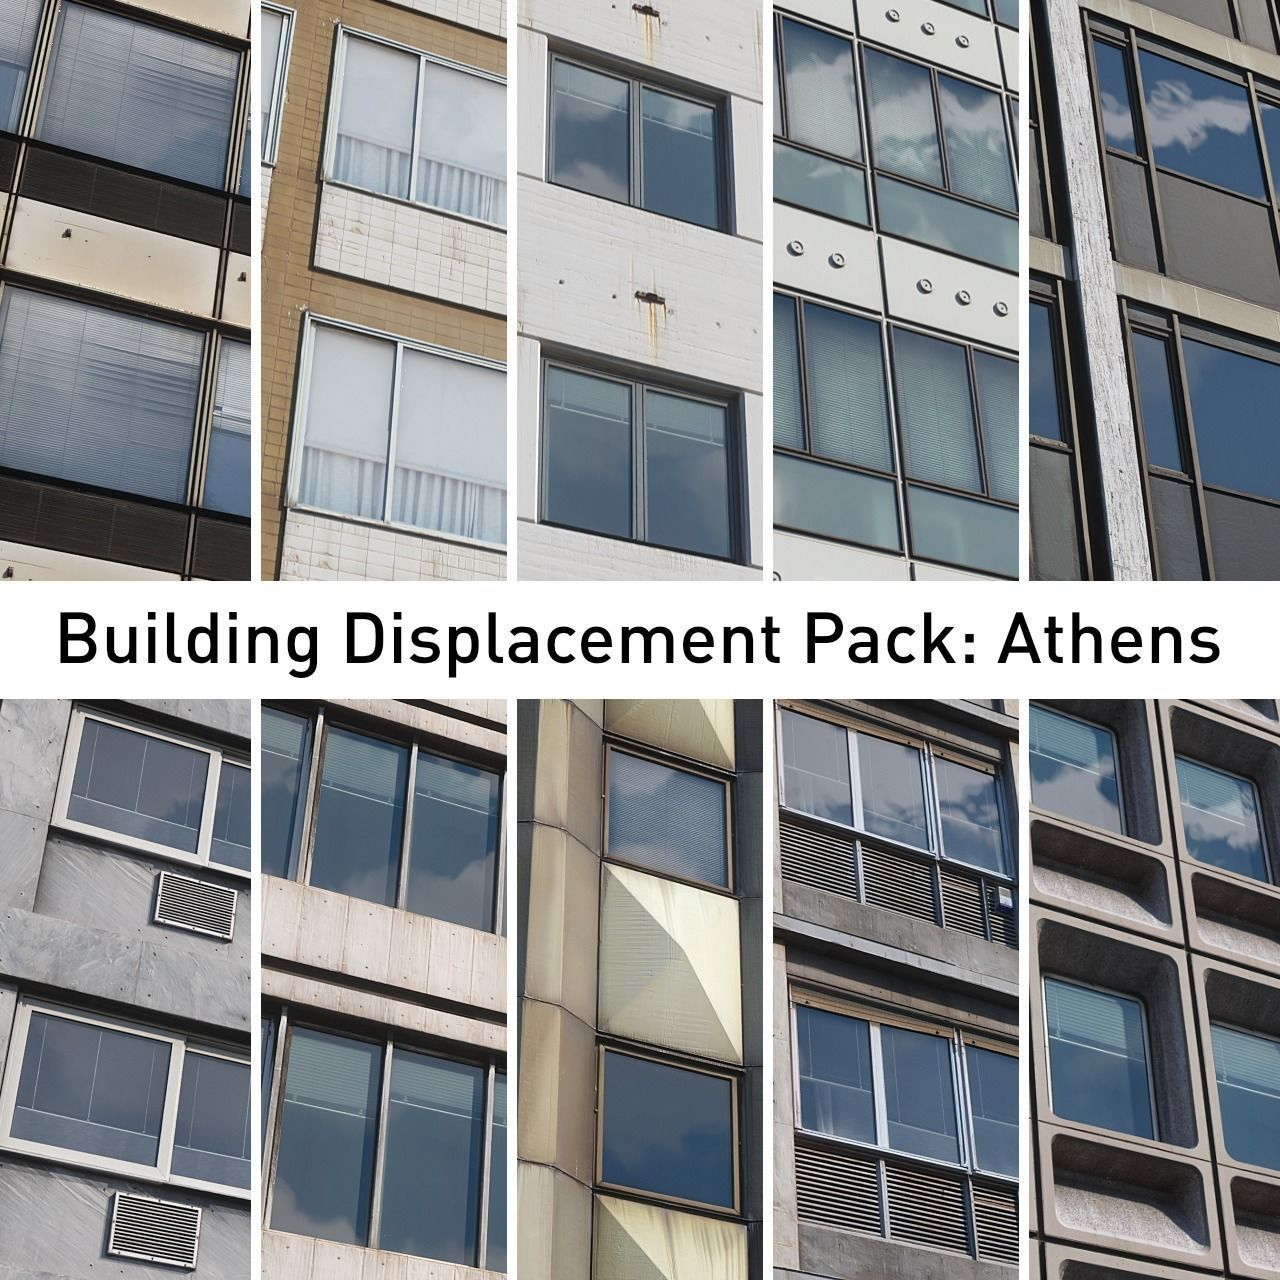 Building Displacement Pack Athens